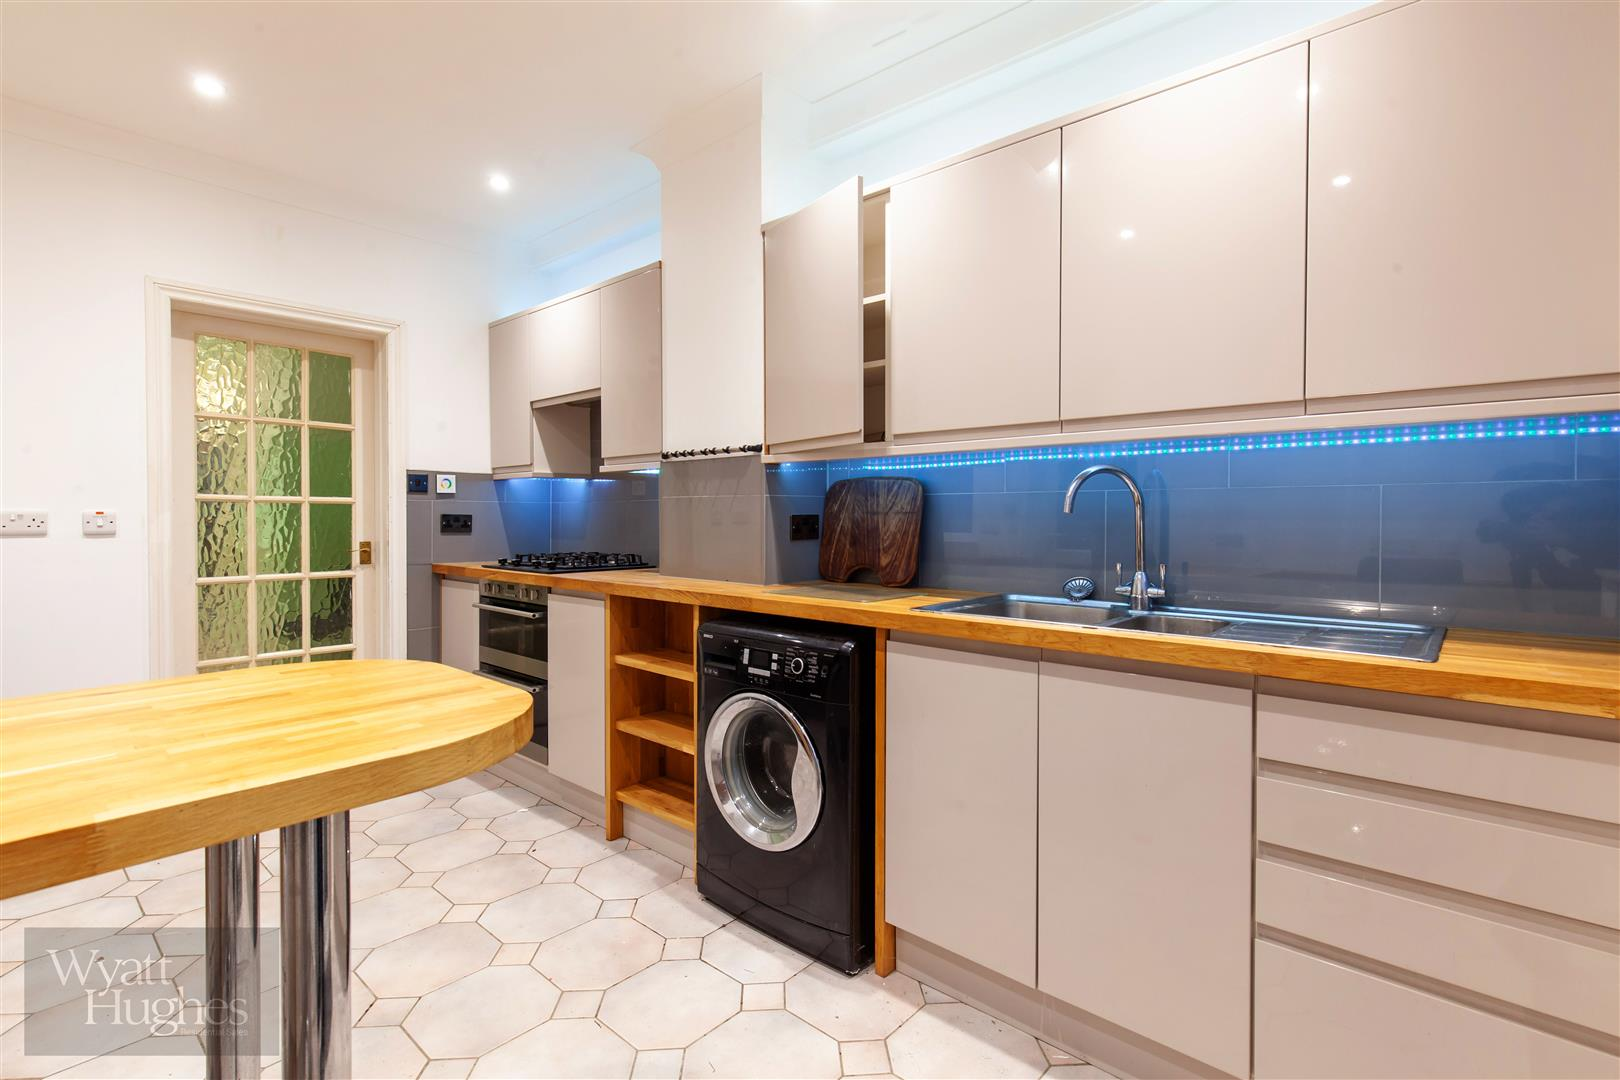 3 bed end-of-terrace-house for sale in Burry Road, St. Leonards-On-Sea 2